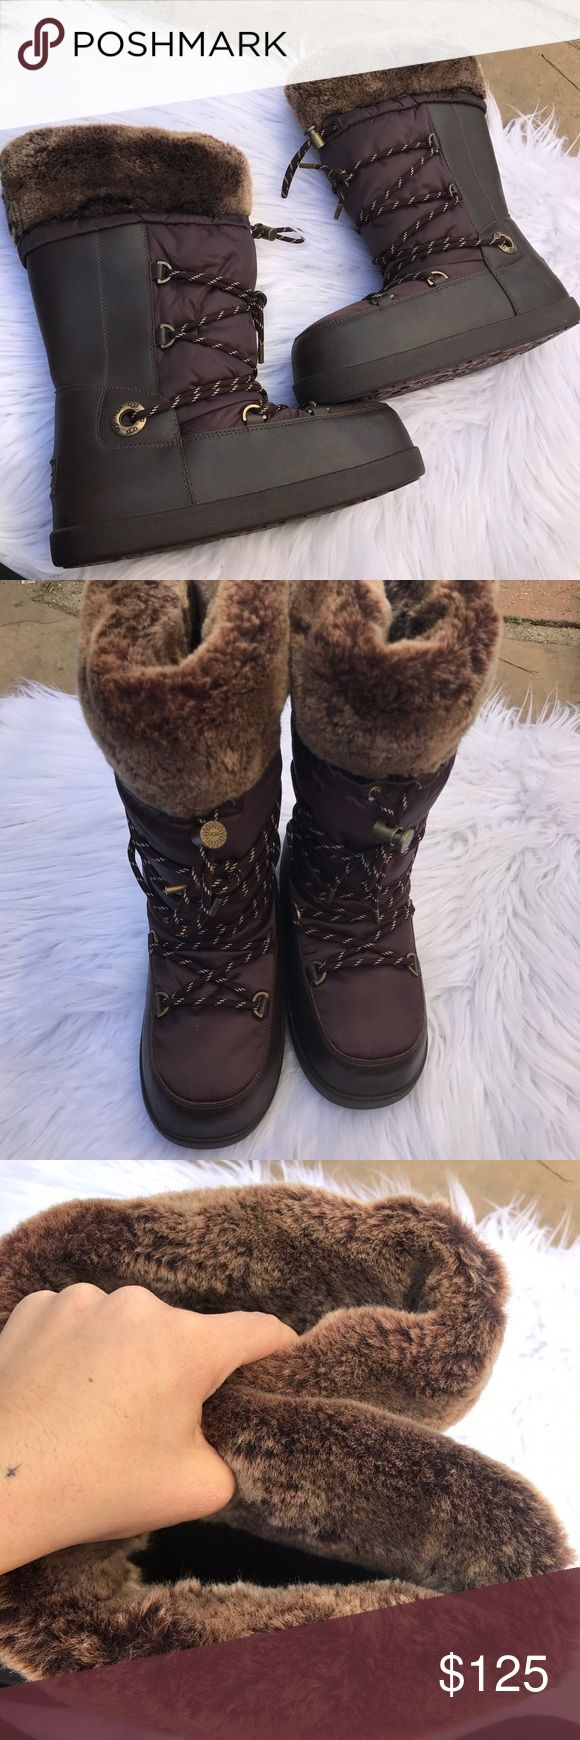 UGG SZ 8 COTTRELL SNOW BOOTS SHOES BOOTS MOON Ugg AUSTRALIA 100% authentic new without box boots UGG Shoes